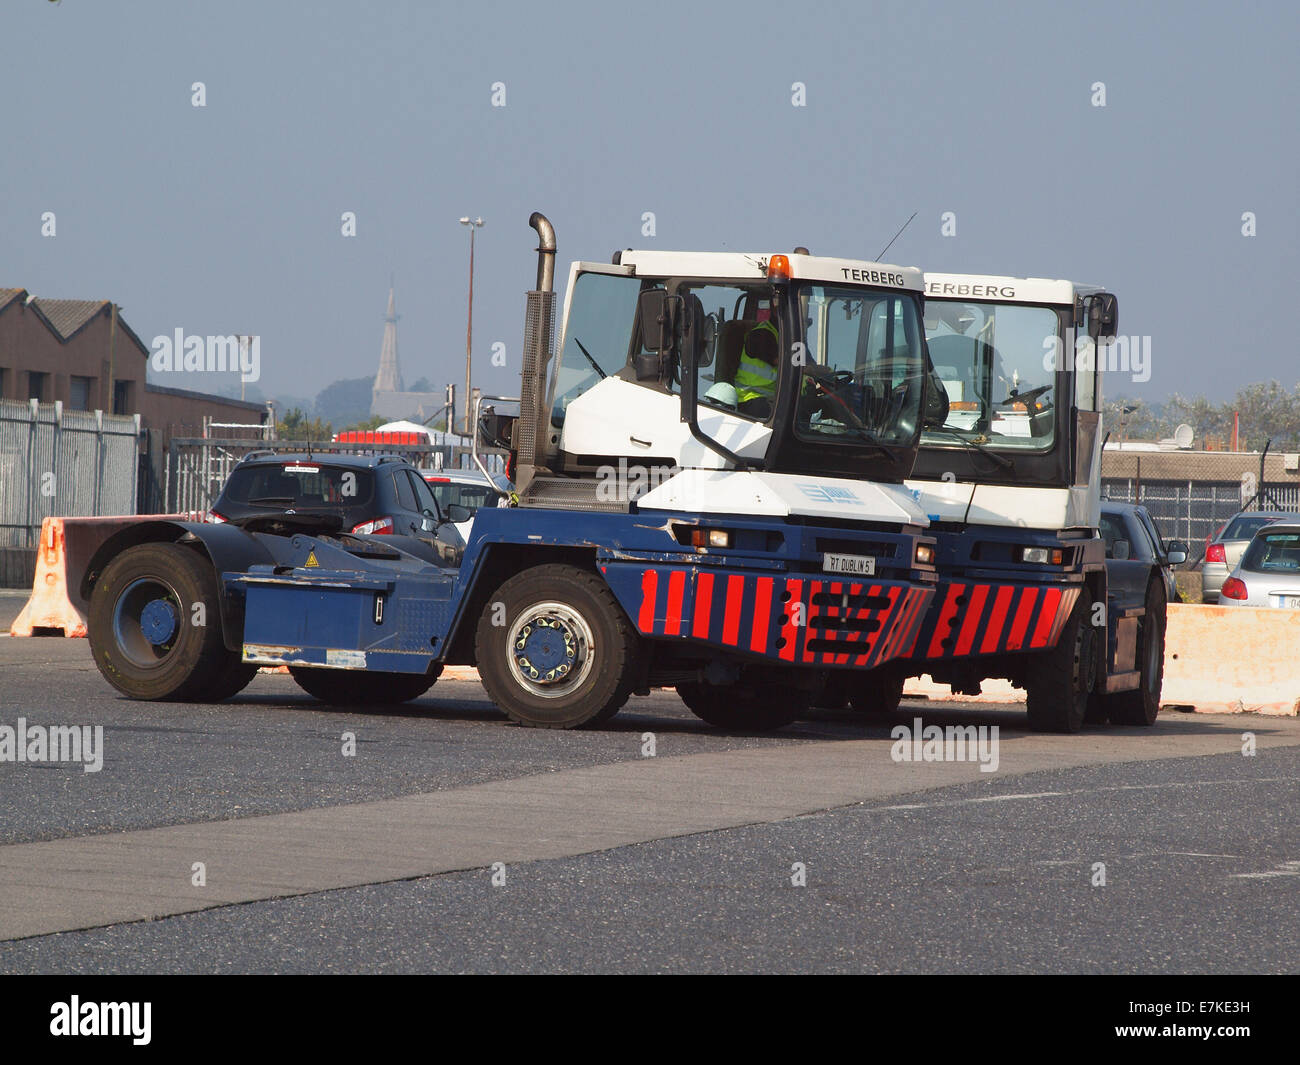 Two portside tractor vehicles stationary at Don Laoghaire Port, Dublin, Ireland, awaiting shipment  movements. - Stock Image